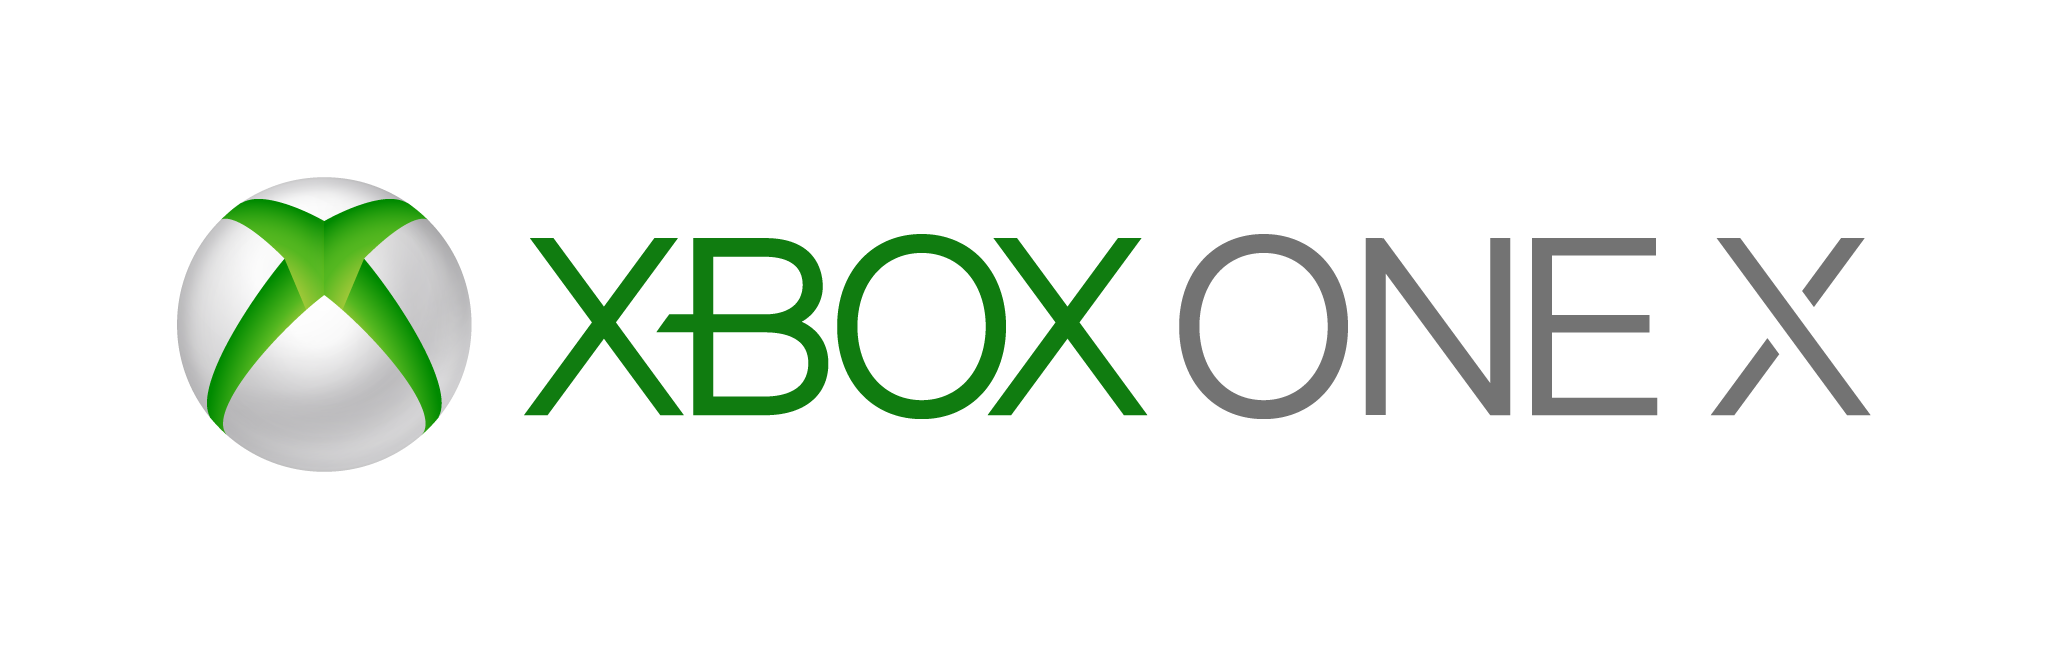 Image result for xbox one x logo